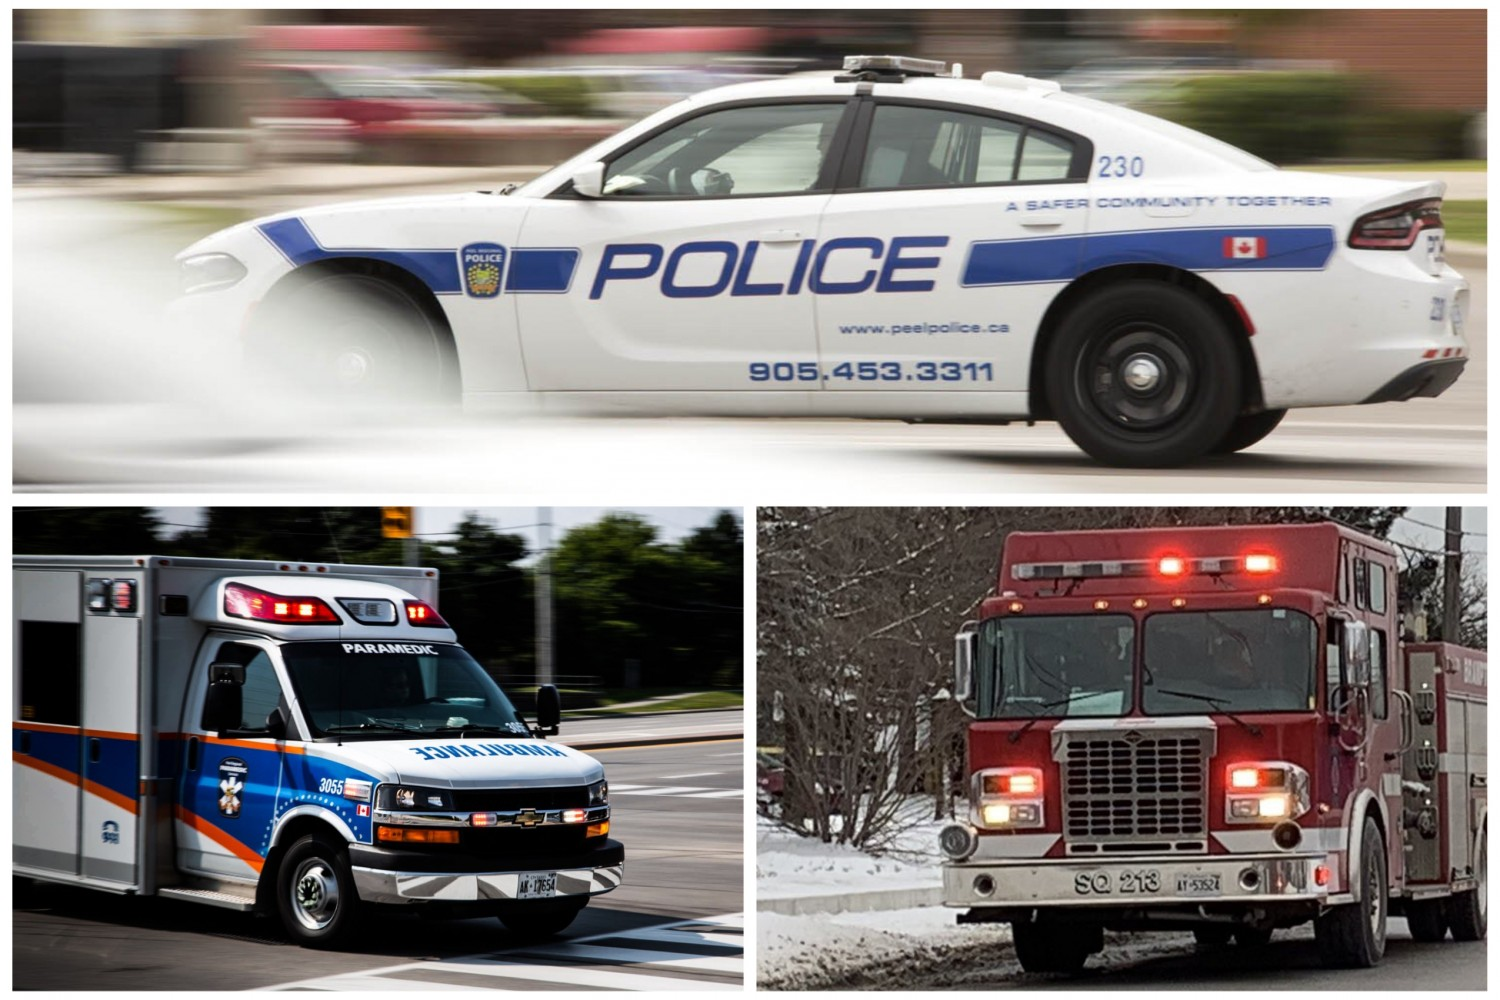 Peel tax dollars flow disproportionately to police, while fire and paramedics struggle